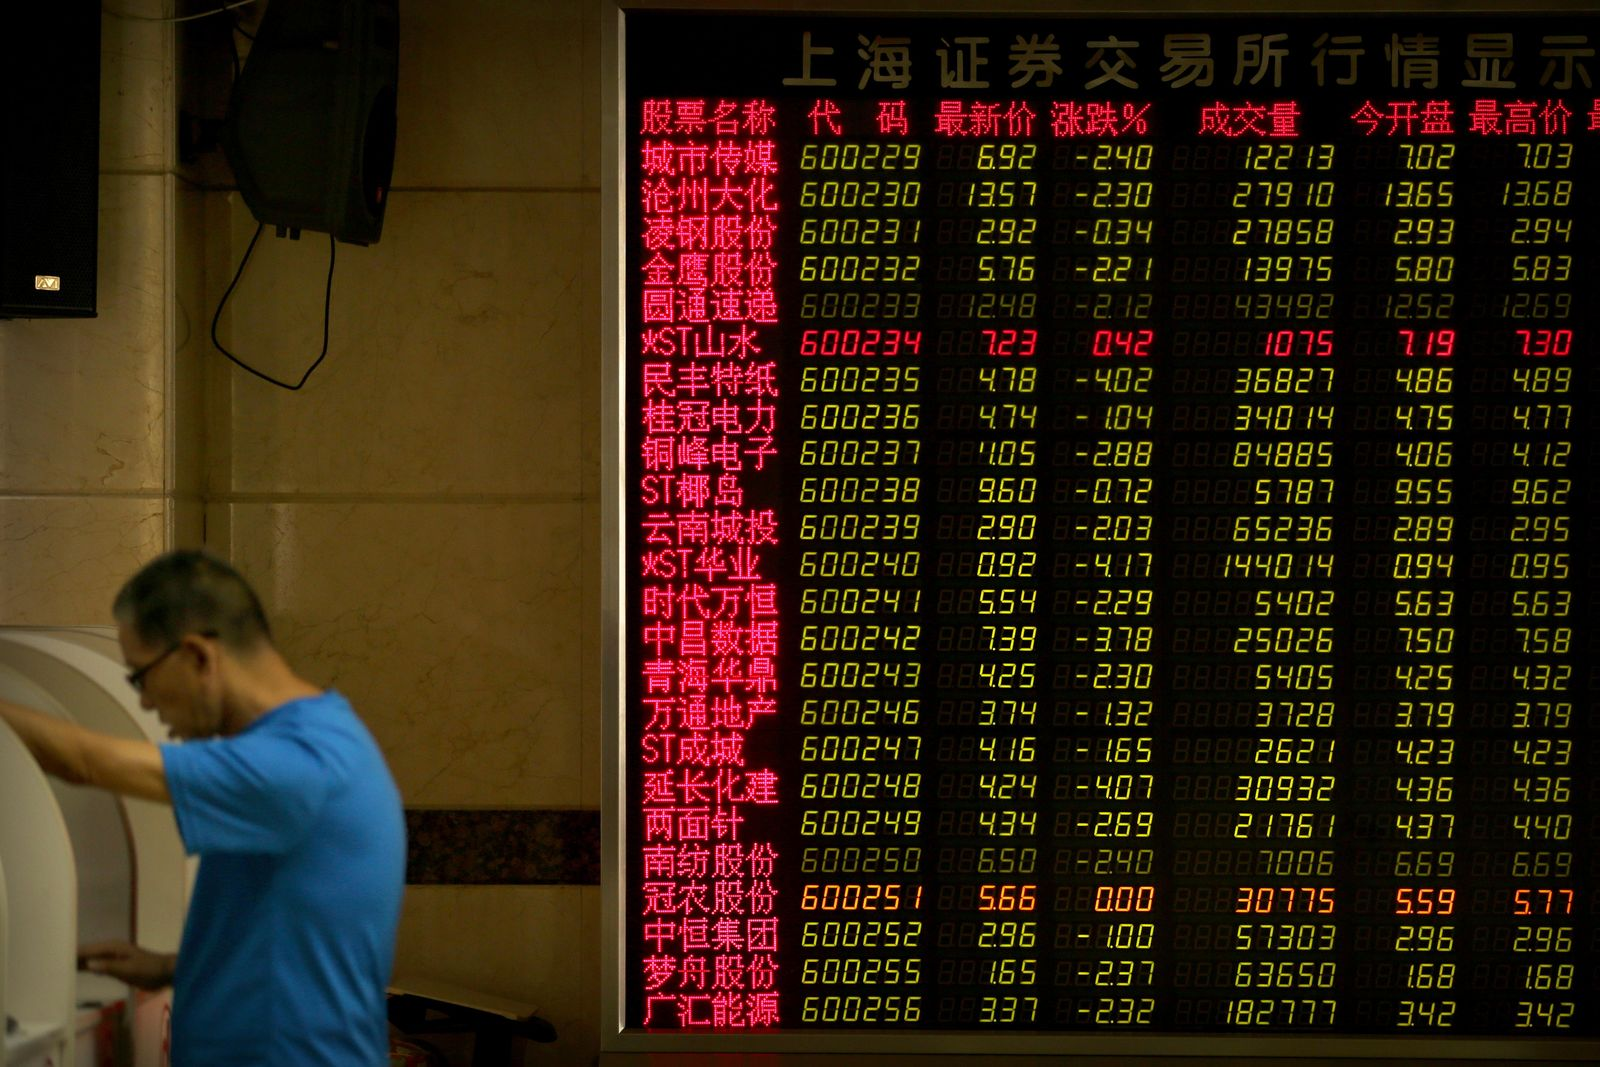 A Chinese investor uses a computer terminal as he monitors stock prices at a brokerage house in Beijing, Friday, Aug. 2, 2019. (AP Photo/Mark Schiefelbein)